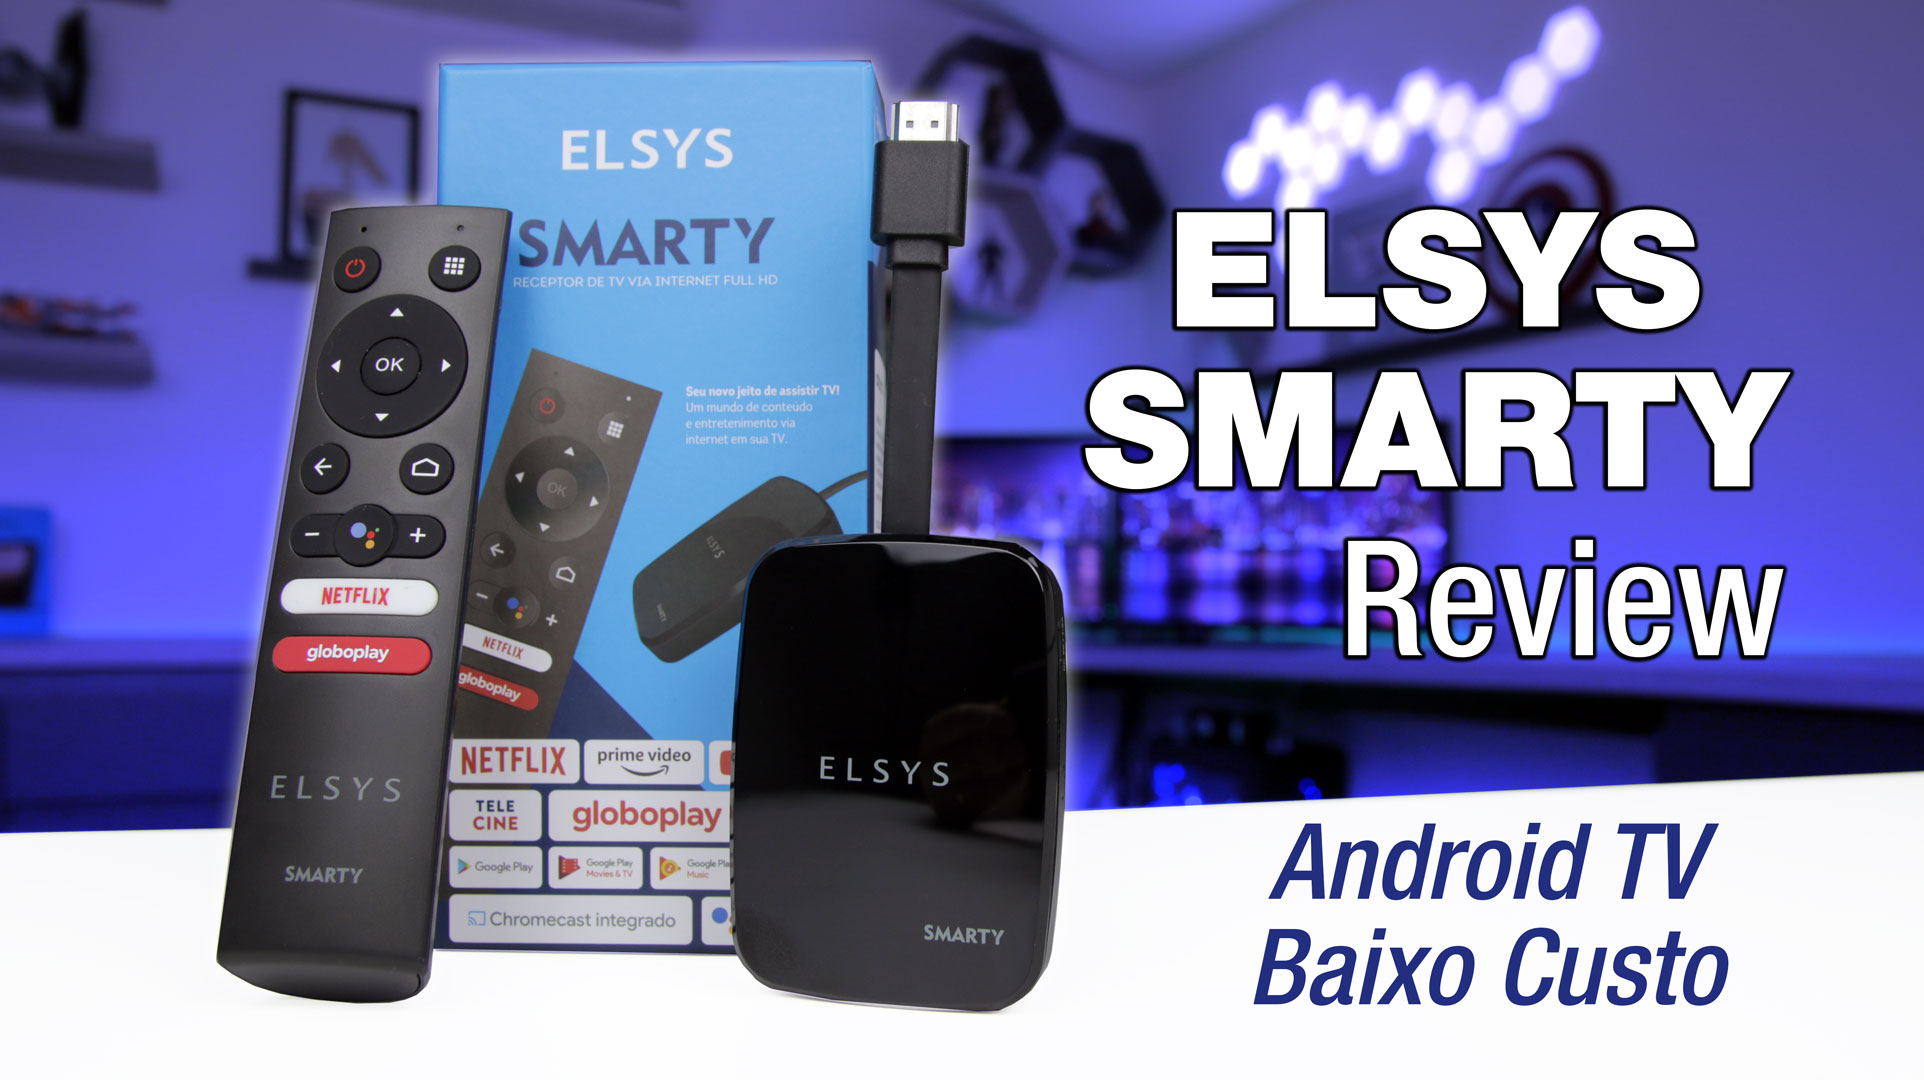 elsys-smarty